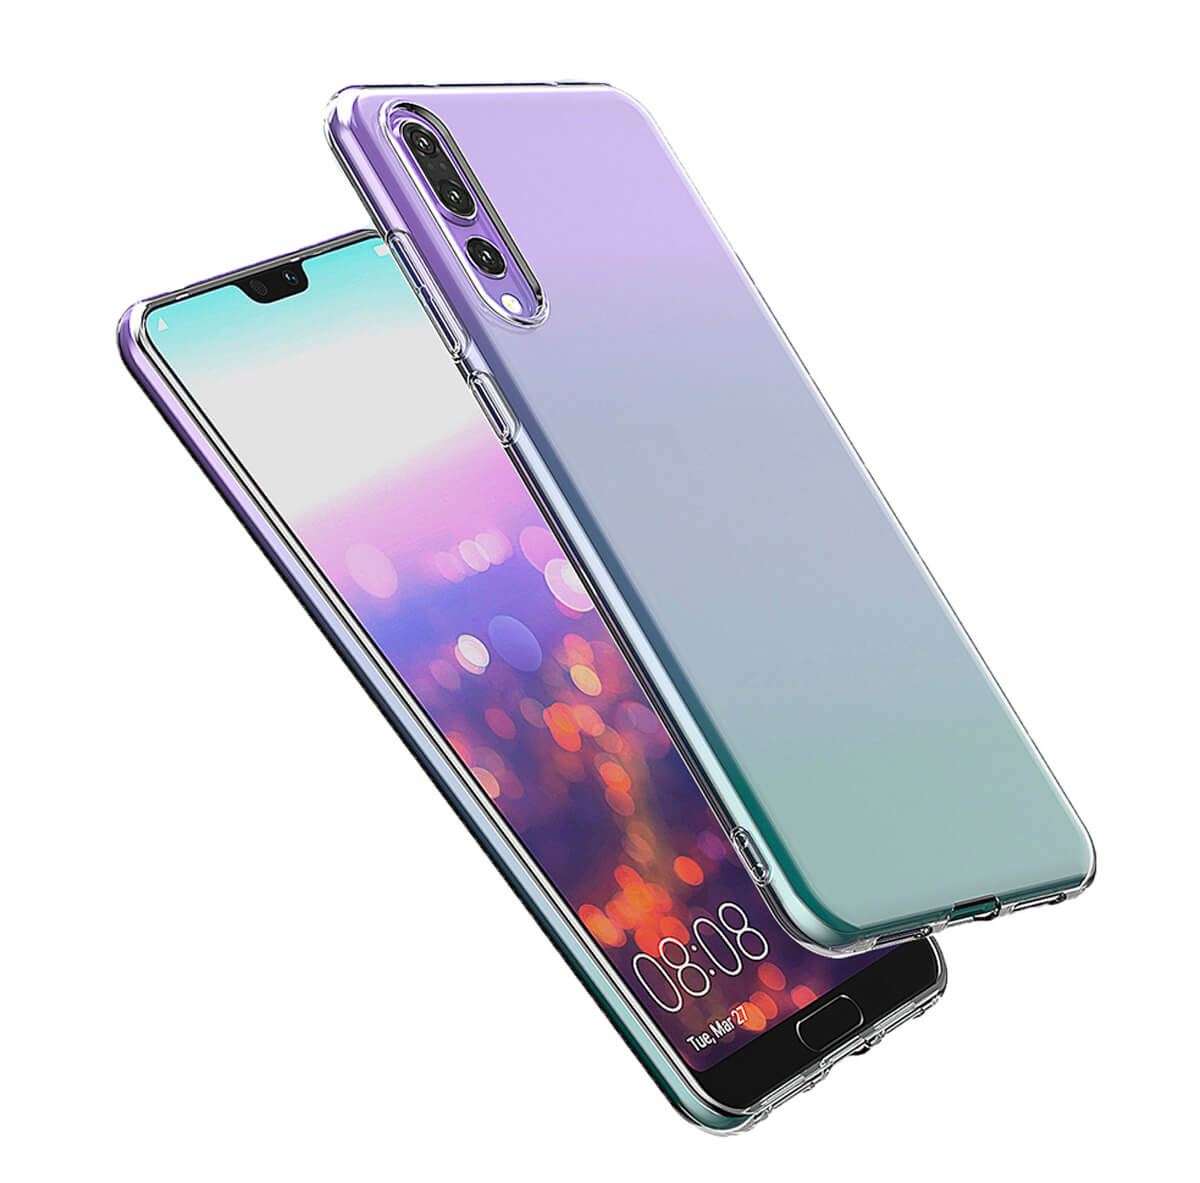 Shockproof-Silicone-Protective-Clear-Gel-Cover-Case-For-Huawei-P20-Pro-P-Smart thumbnail 81